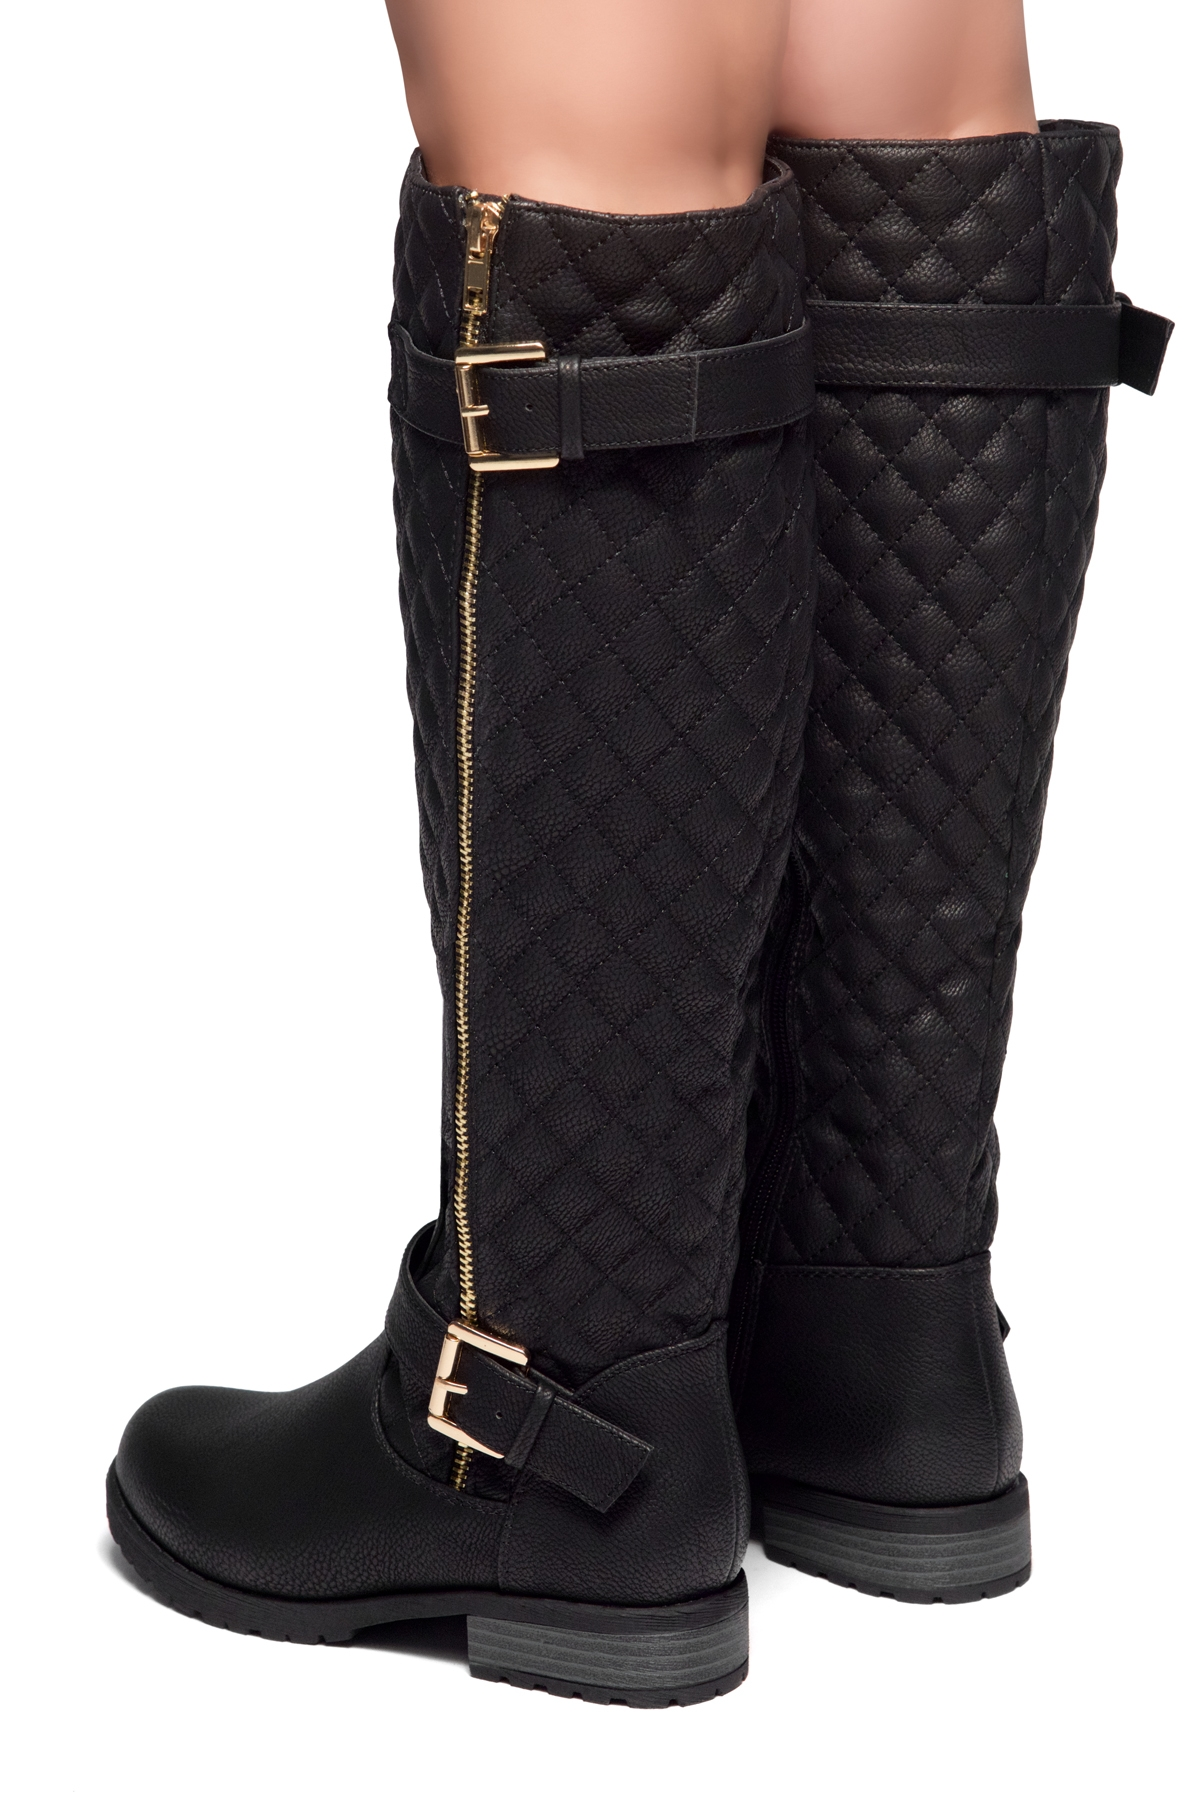 34957d82baed Women s Black Lorreenn-Hi Women s Quilted